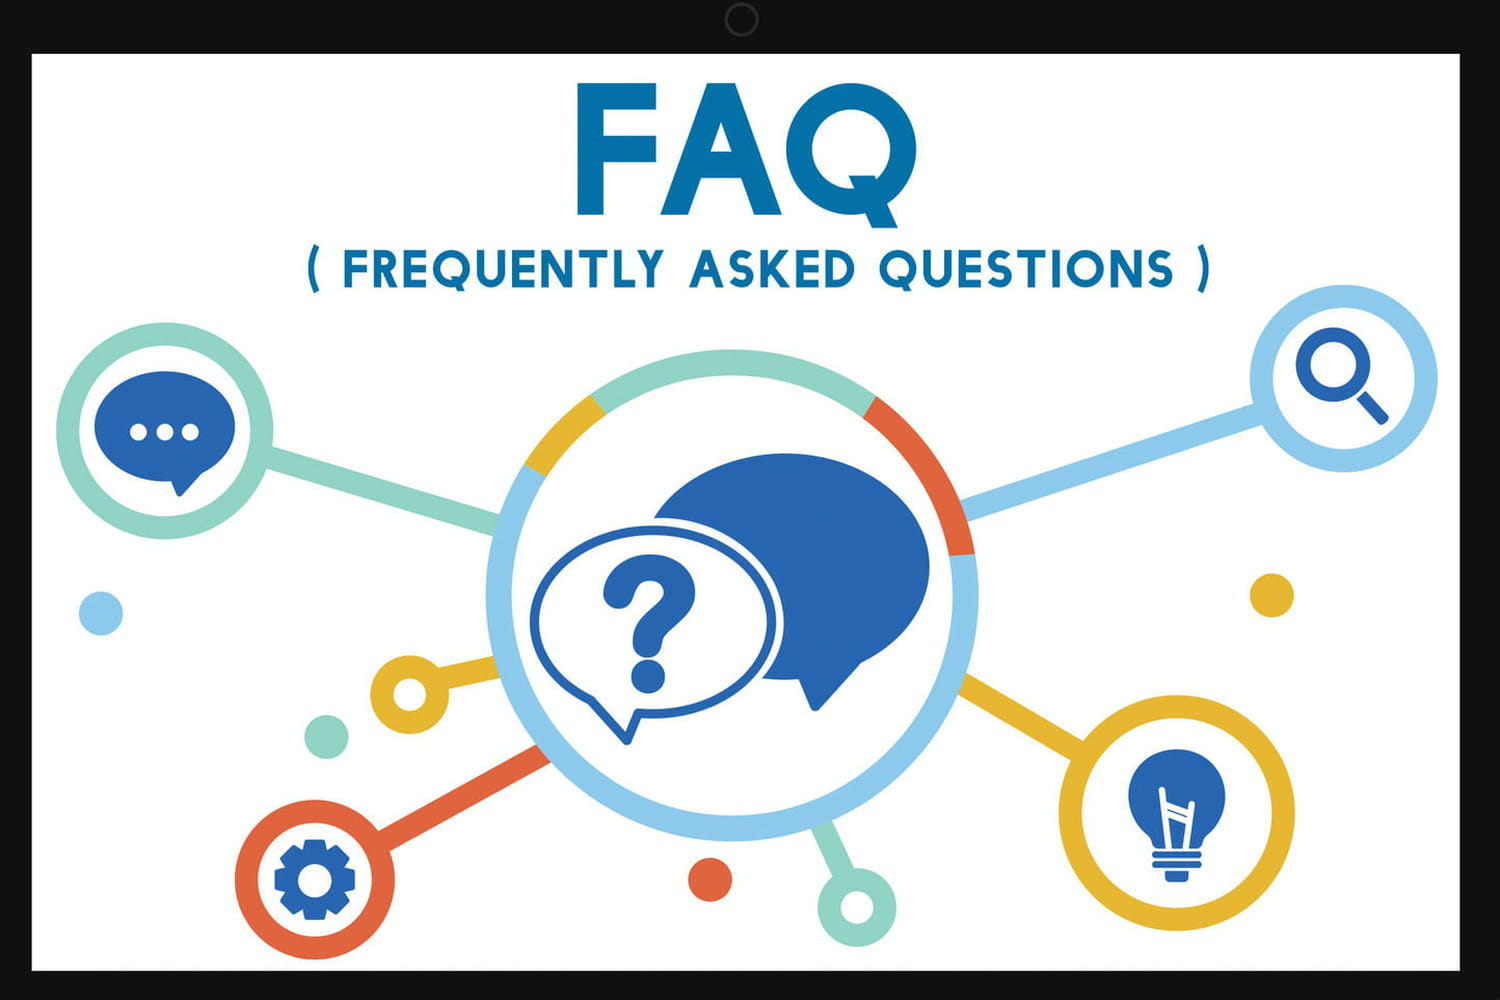 FAQ (Frequently Asked Questions): définition, traduction